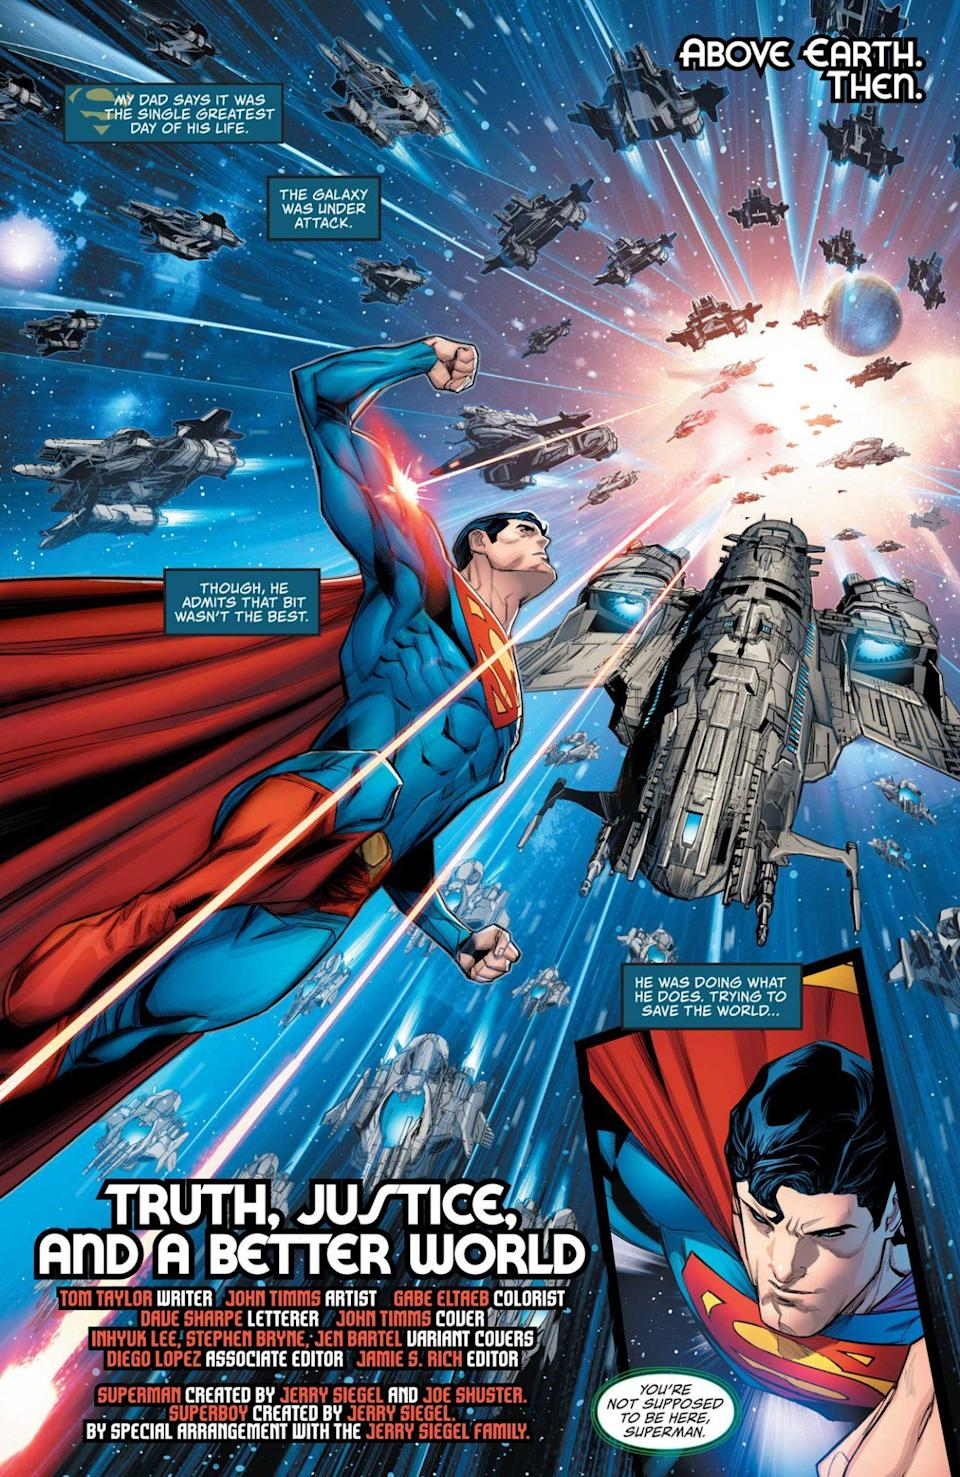 Page one of Superman: Son of Kal-El #1.